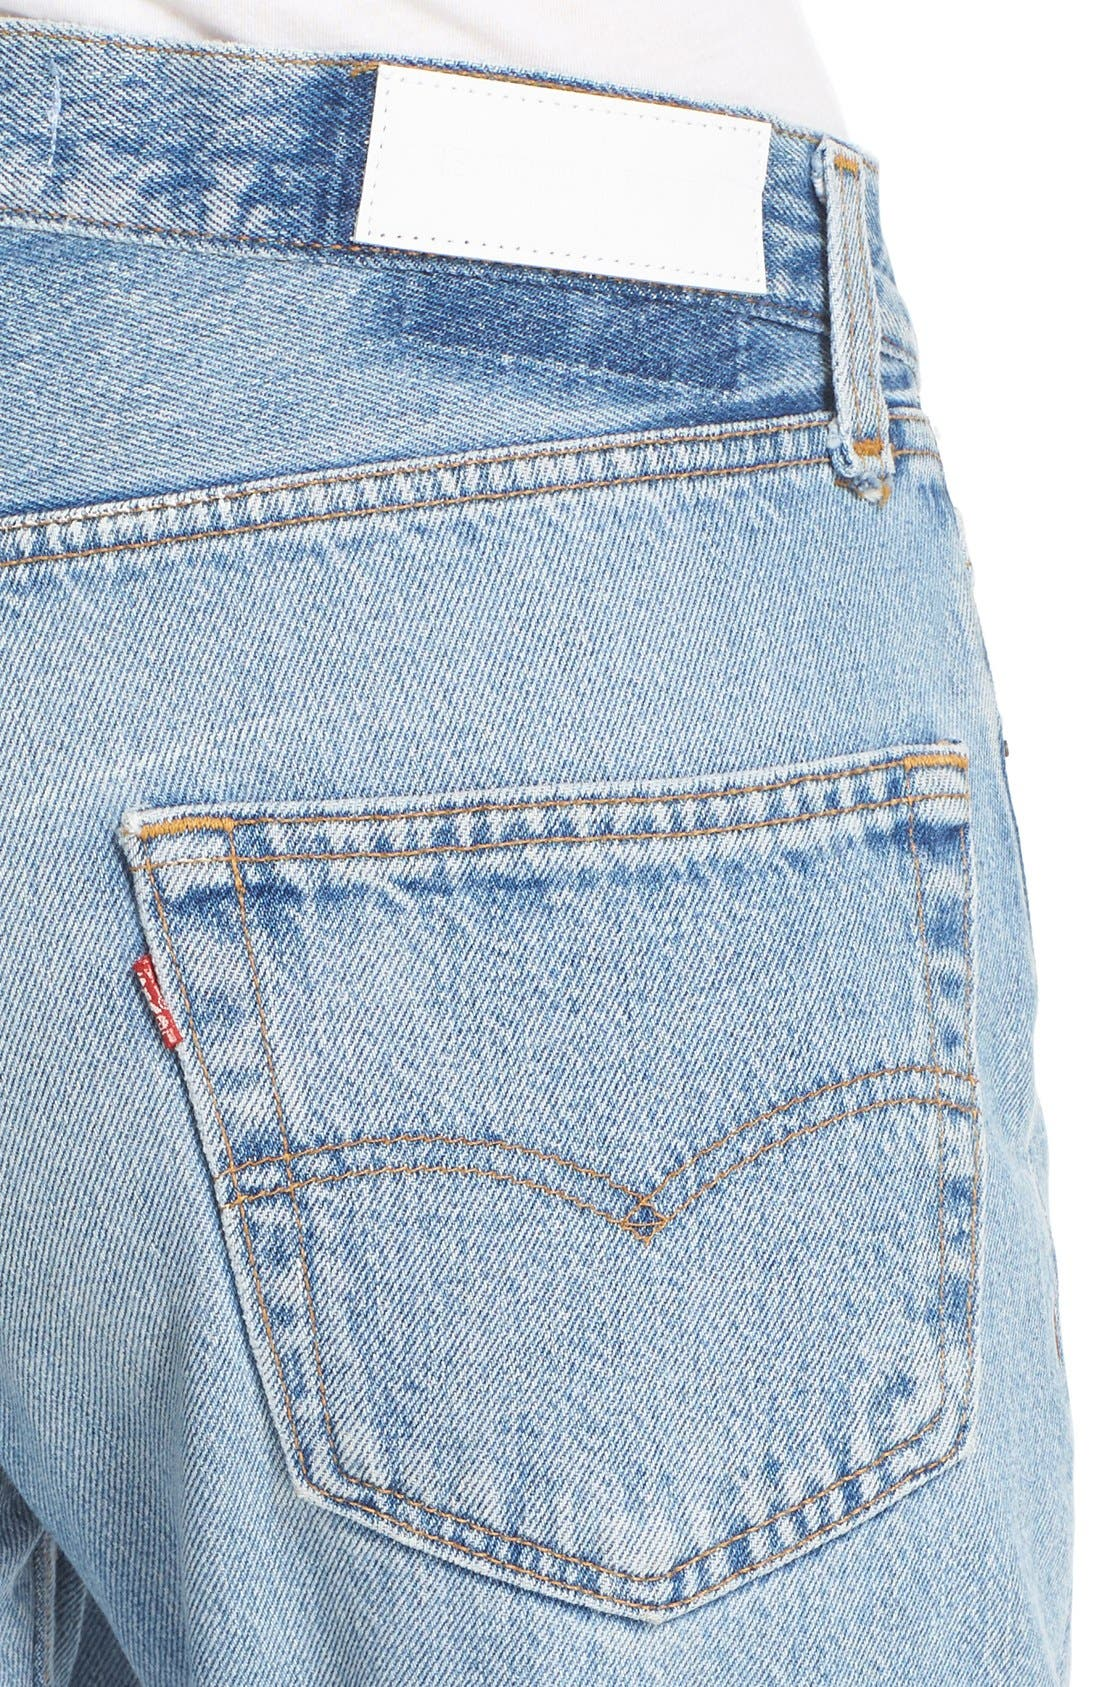 'The Relaxed Crop' Reconstructed Jeans,                             Alternate thumbnail 4, color,                             400